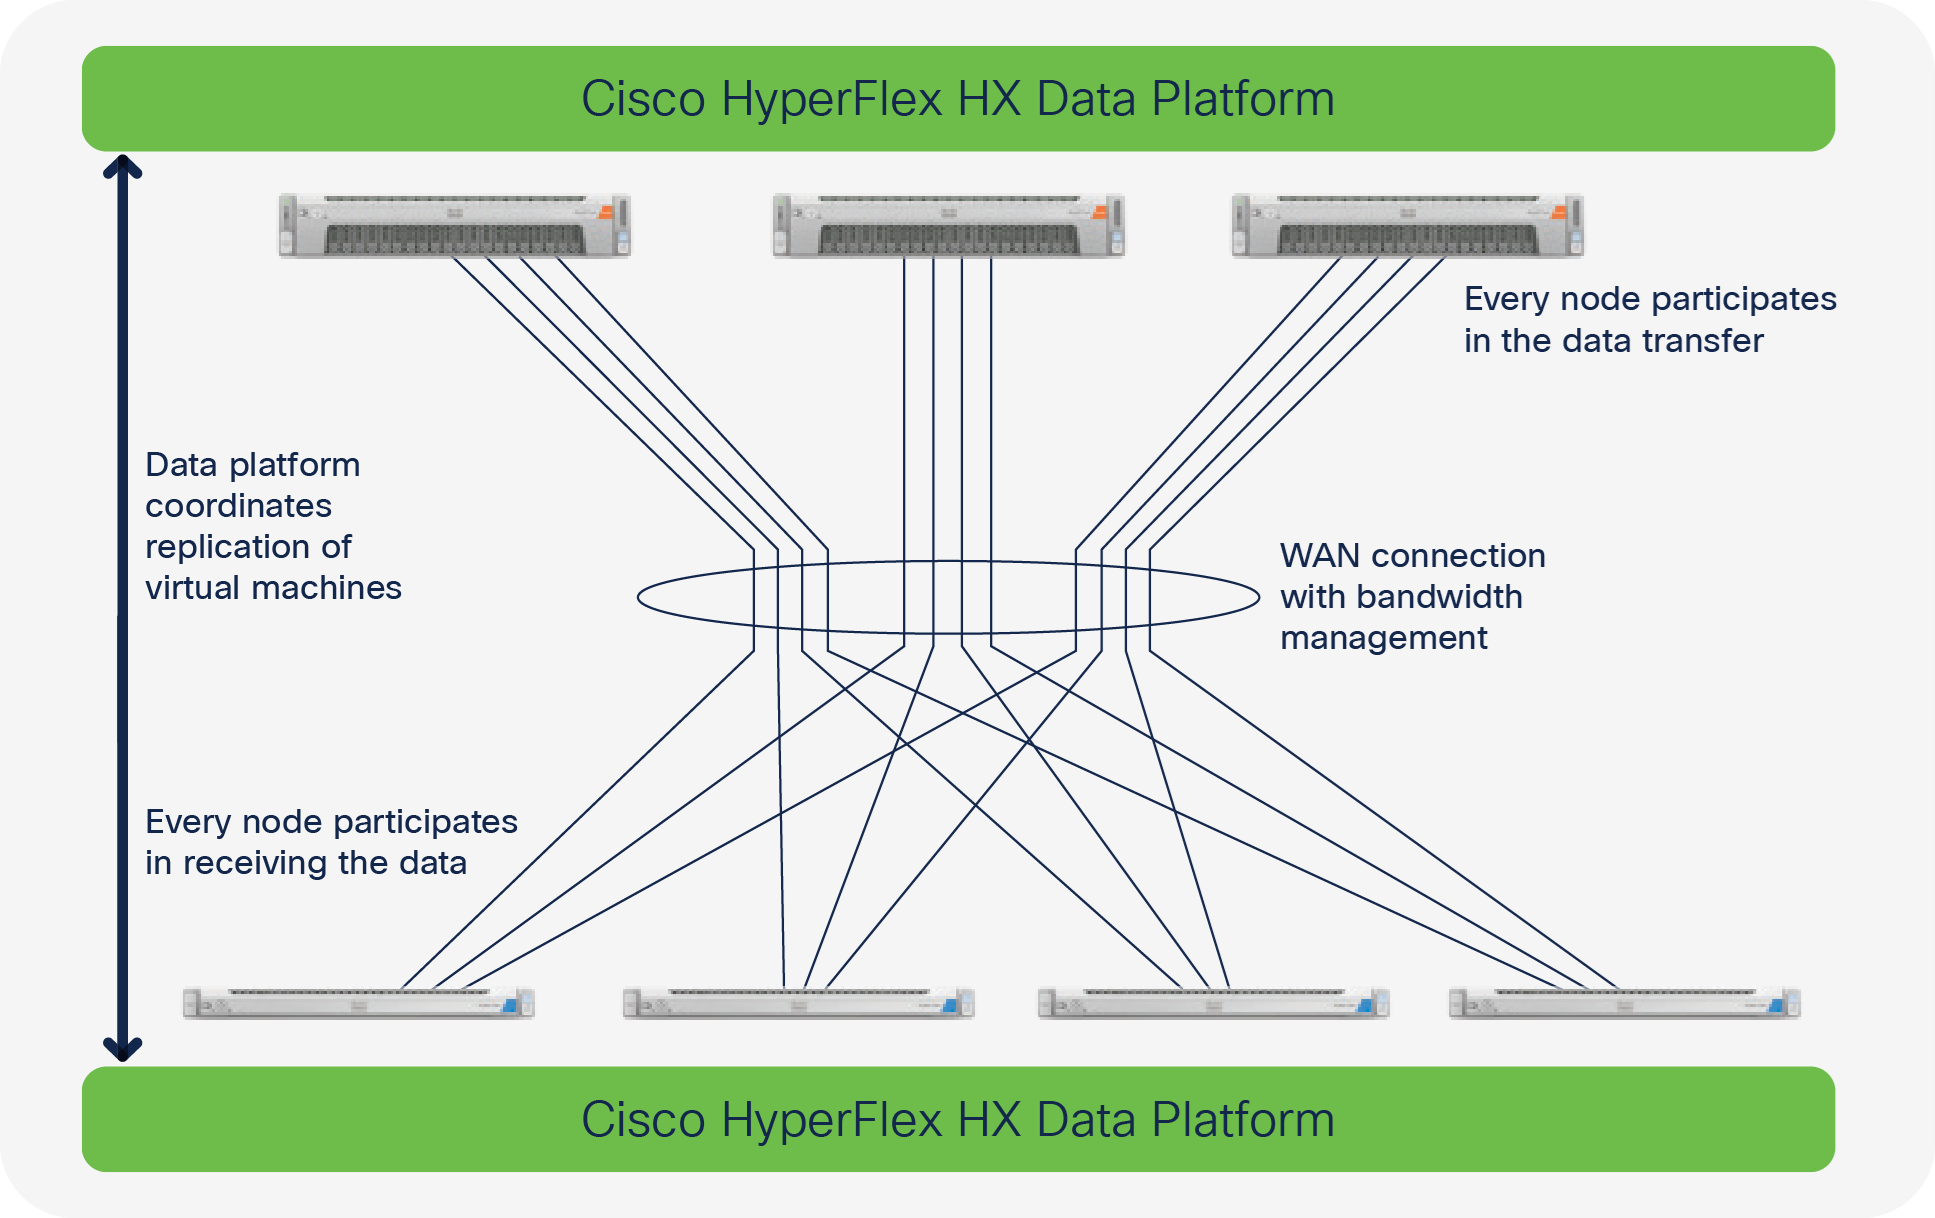 Cisco HyperFlex native replication streams data from each of the primary site nodes to quickly and efficiently transfer data to all the nodes at your secondary site